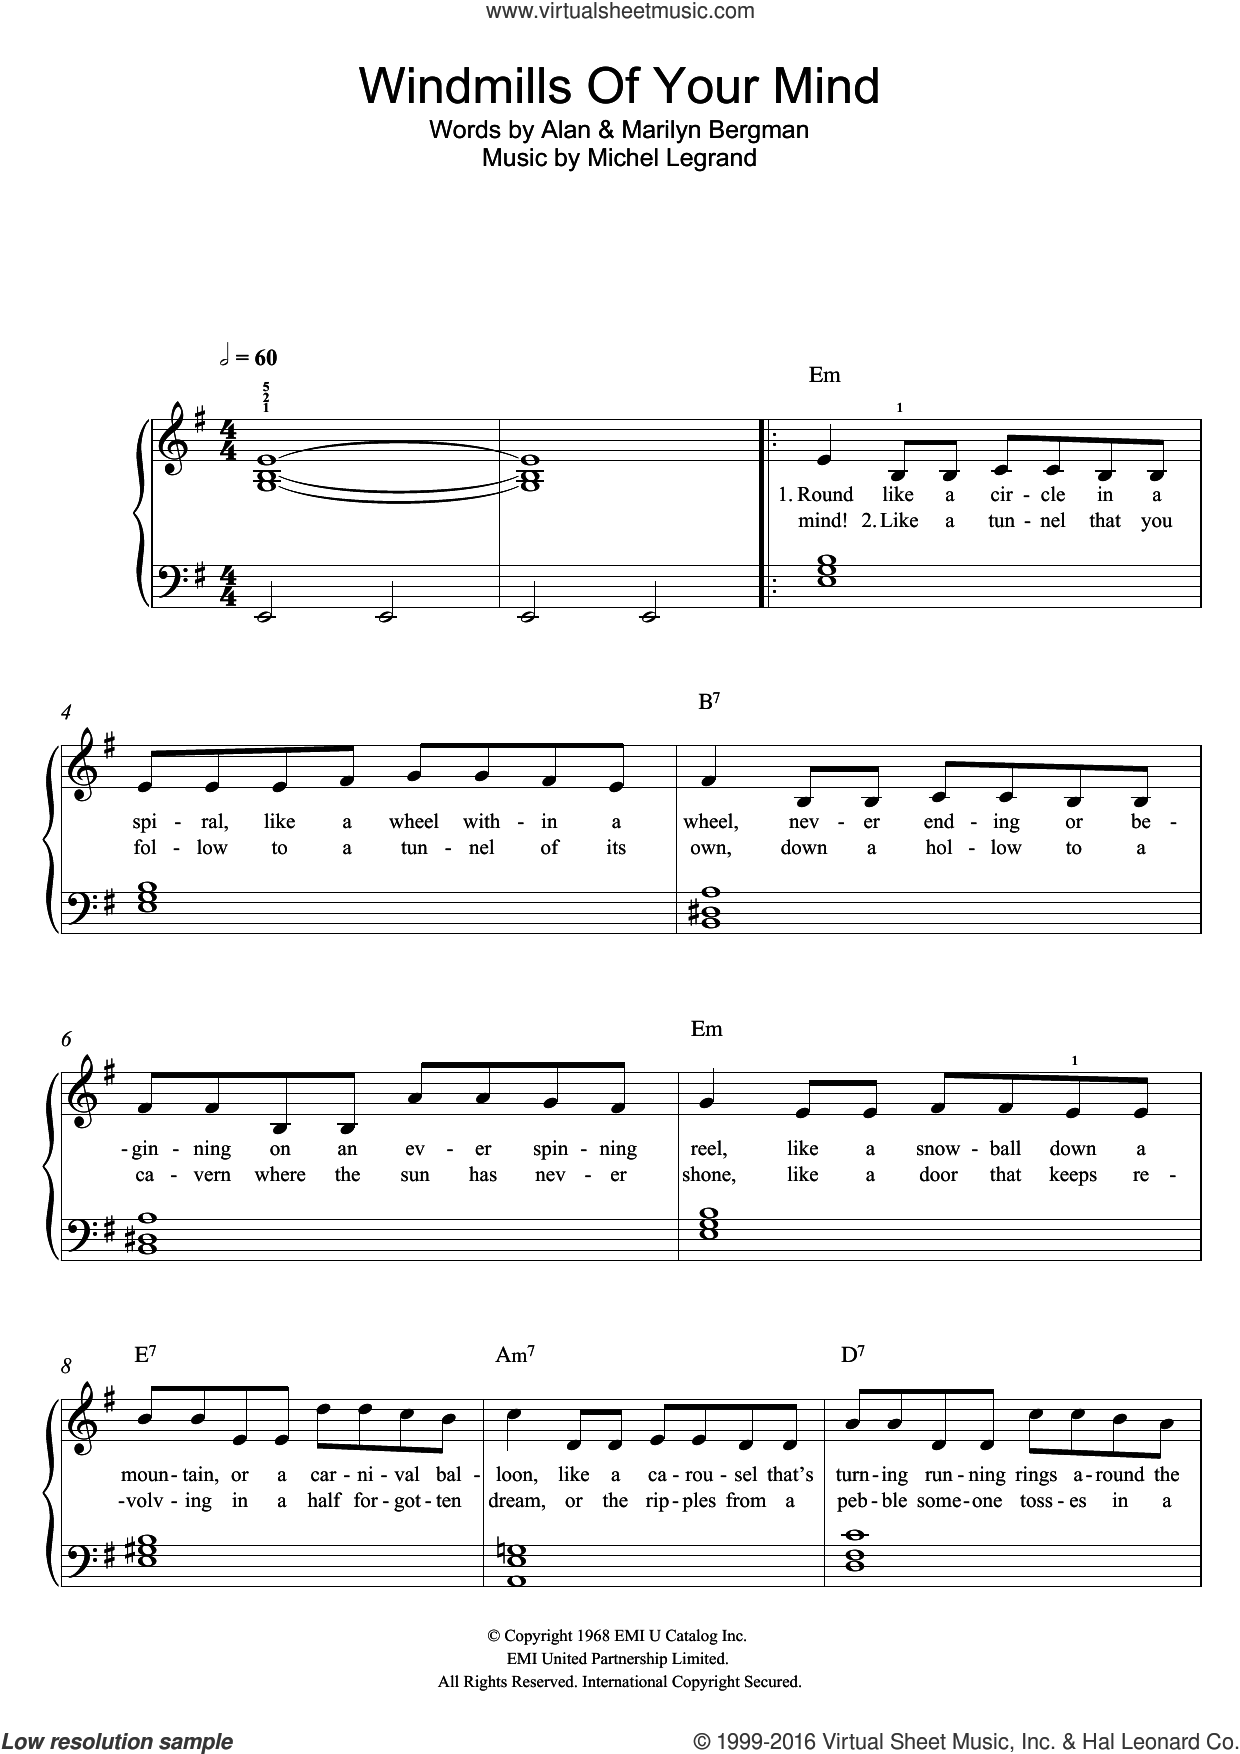 The Windmills Of Your Mind sheet music for piano solo by Noel Harrison, Michel LeGrand, Alan and Marilyn Bergman, easy skill level